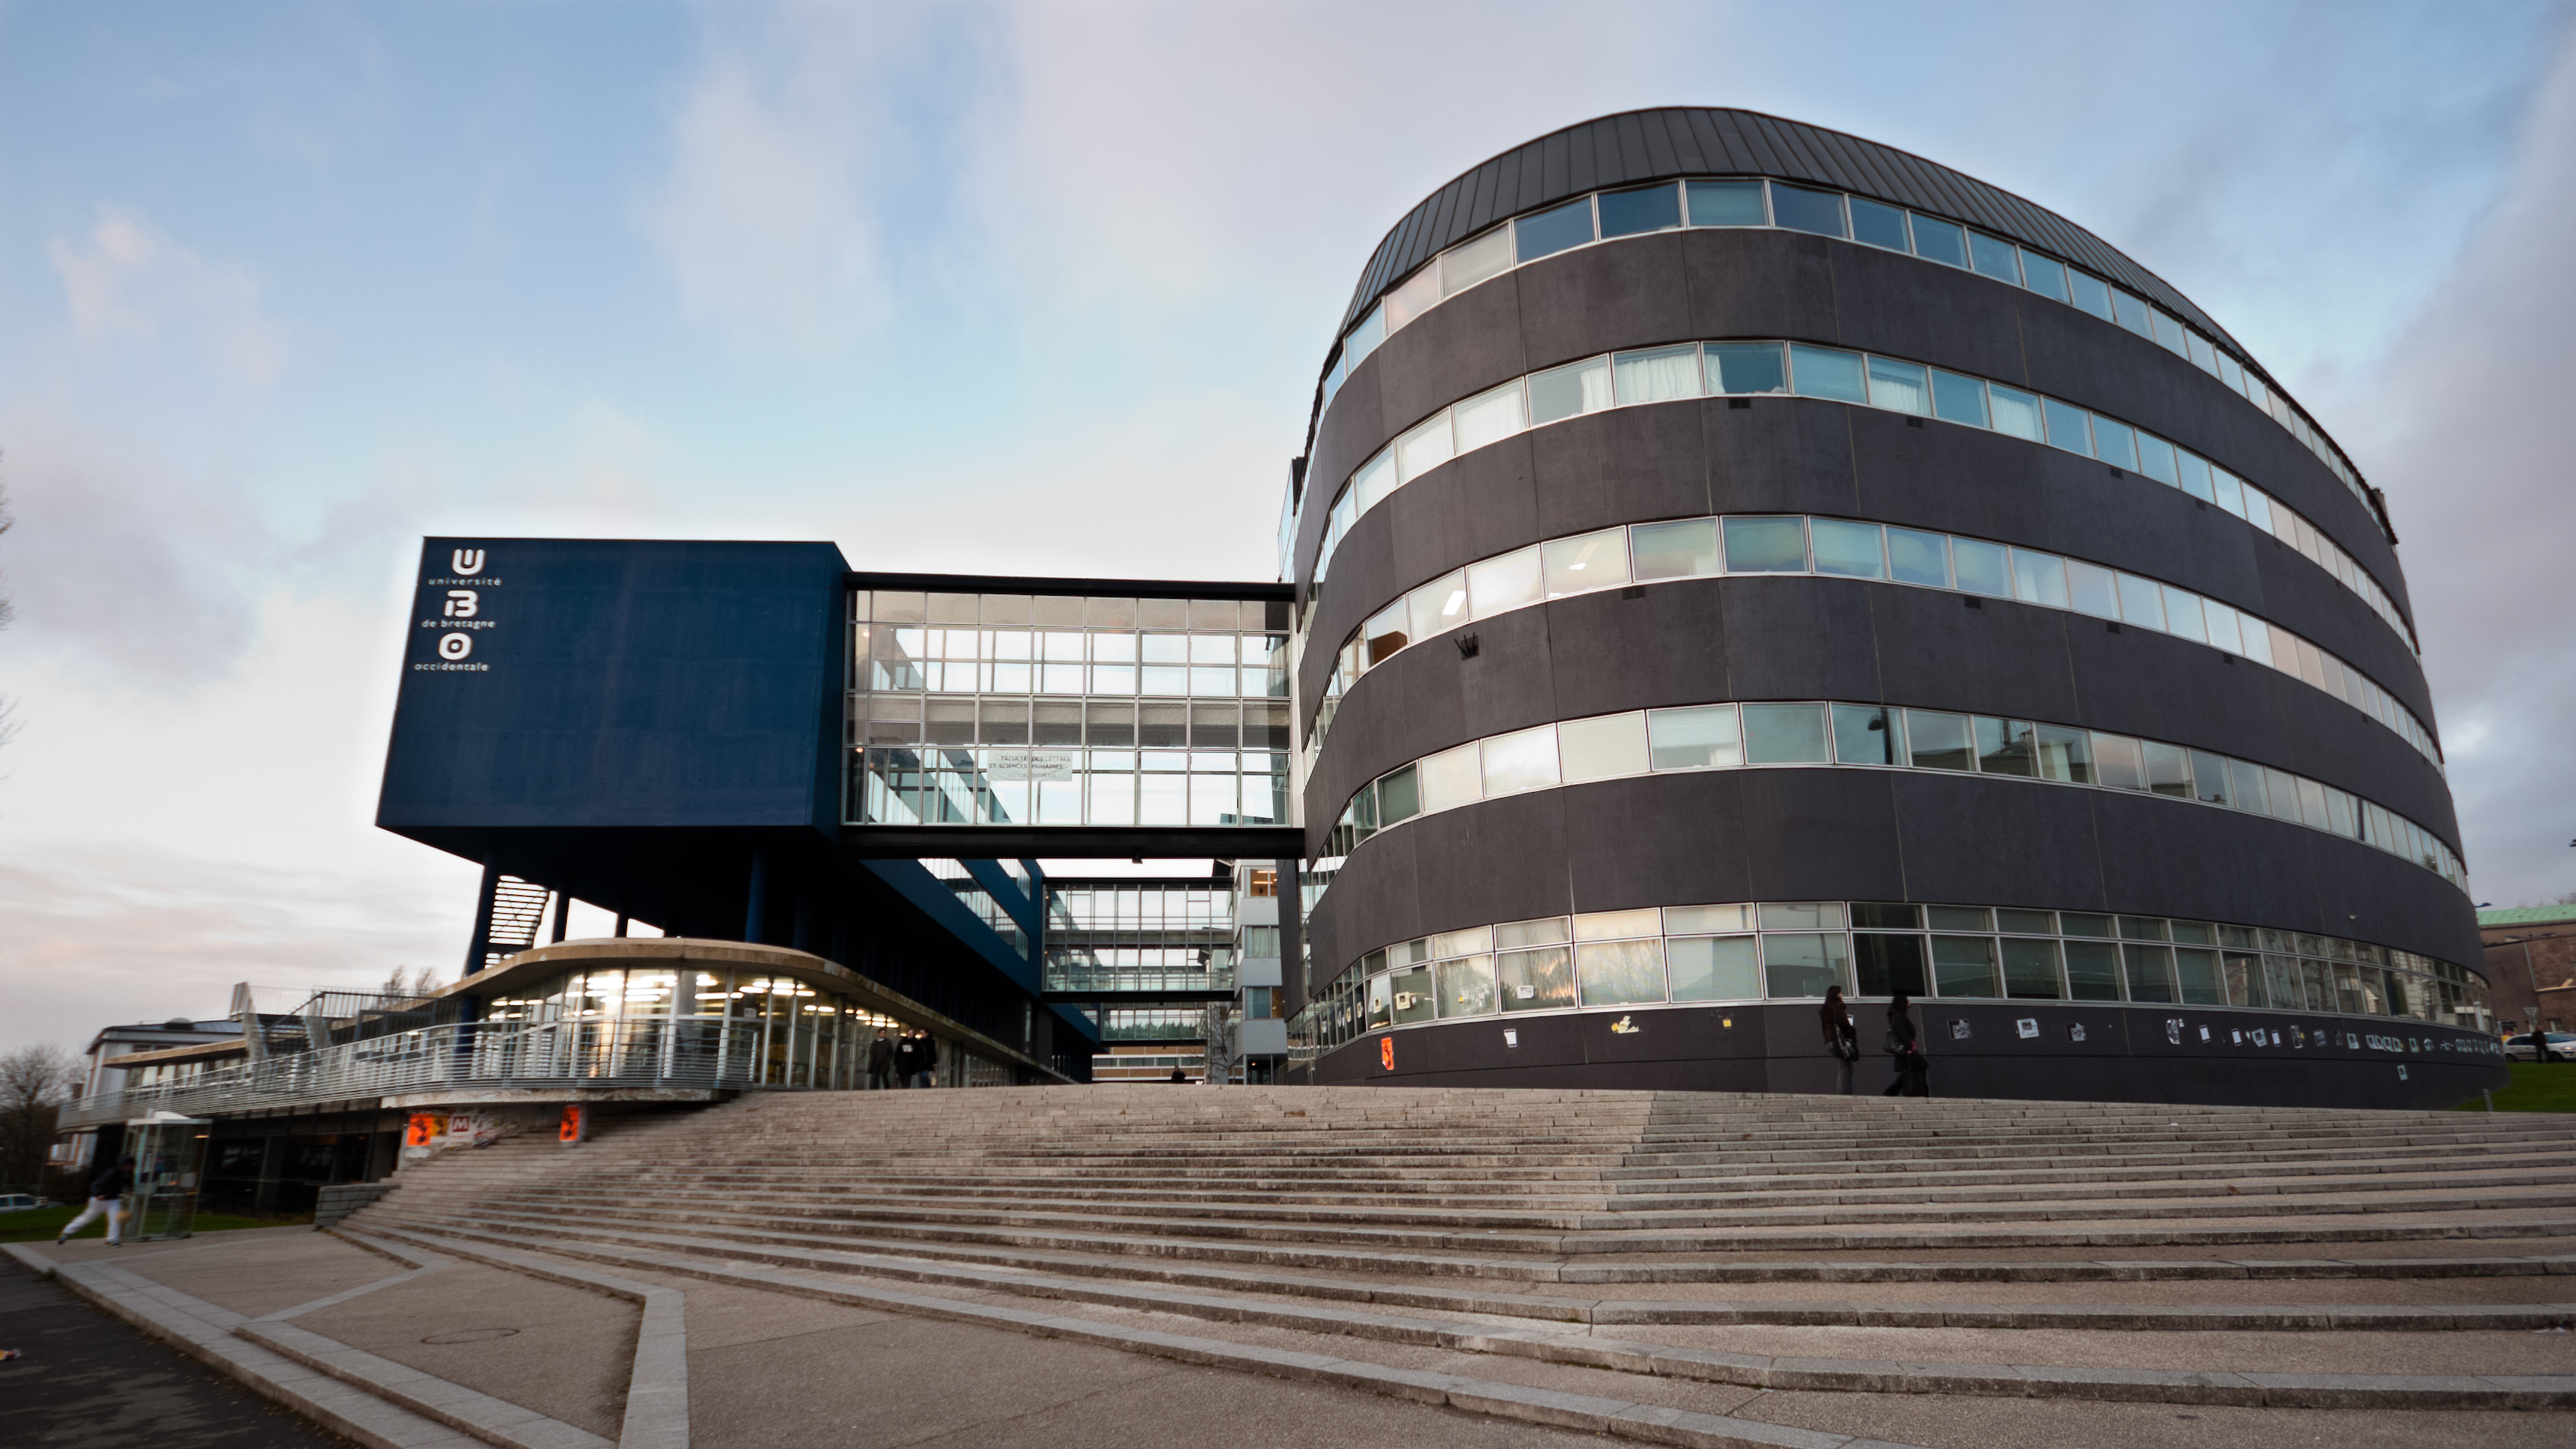 Ecole D Architecture De Brest university of western brittany - wikiwand